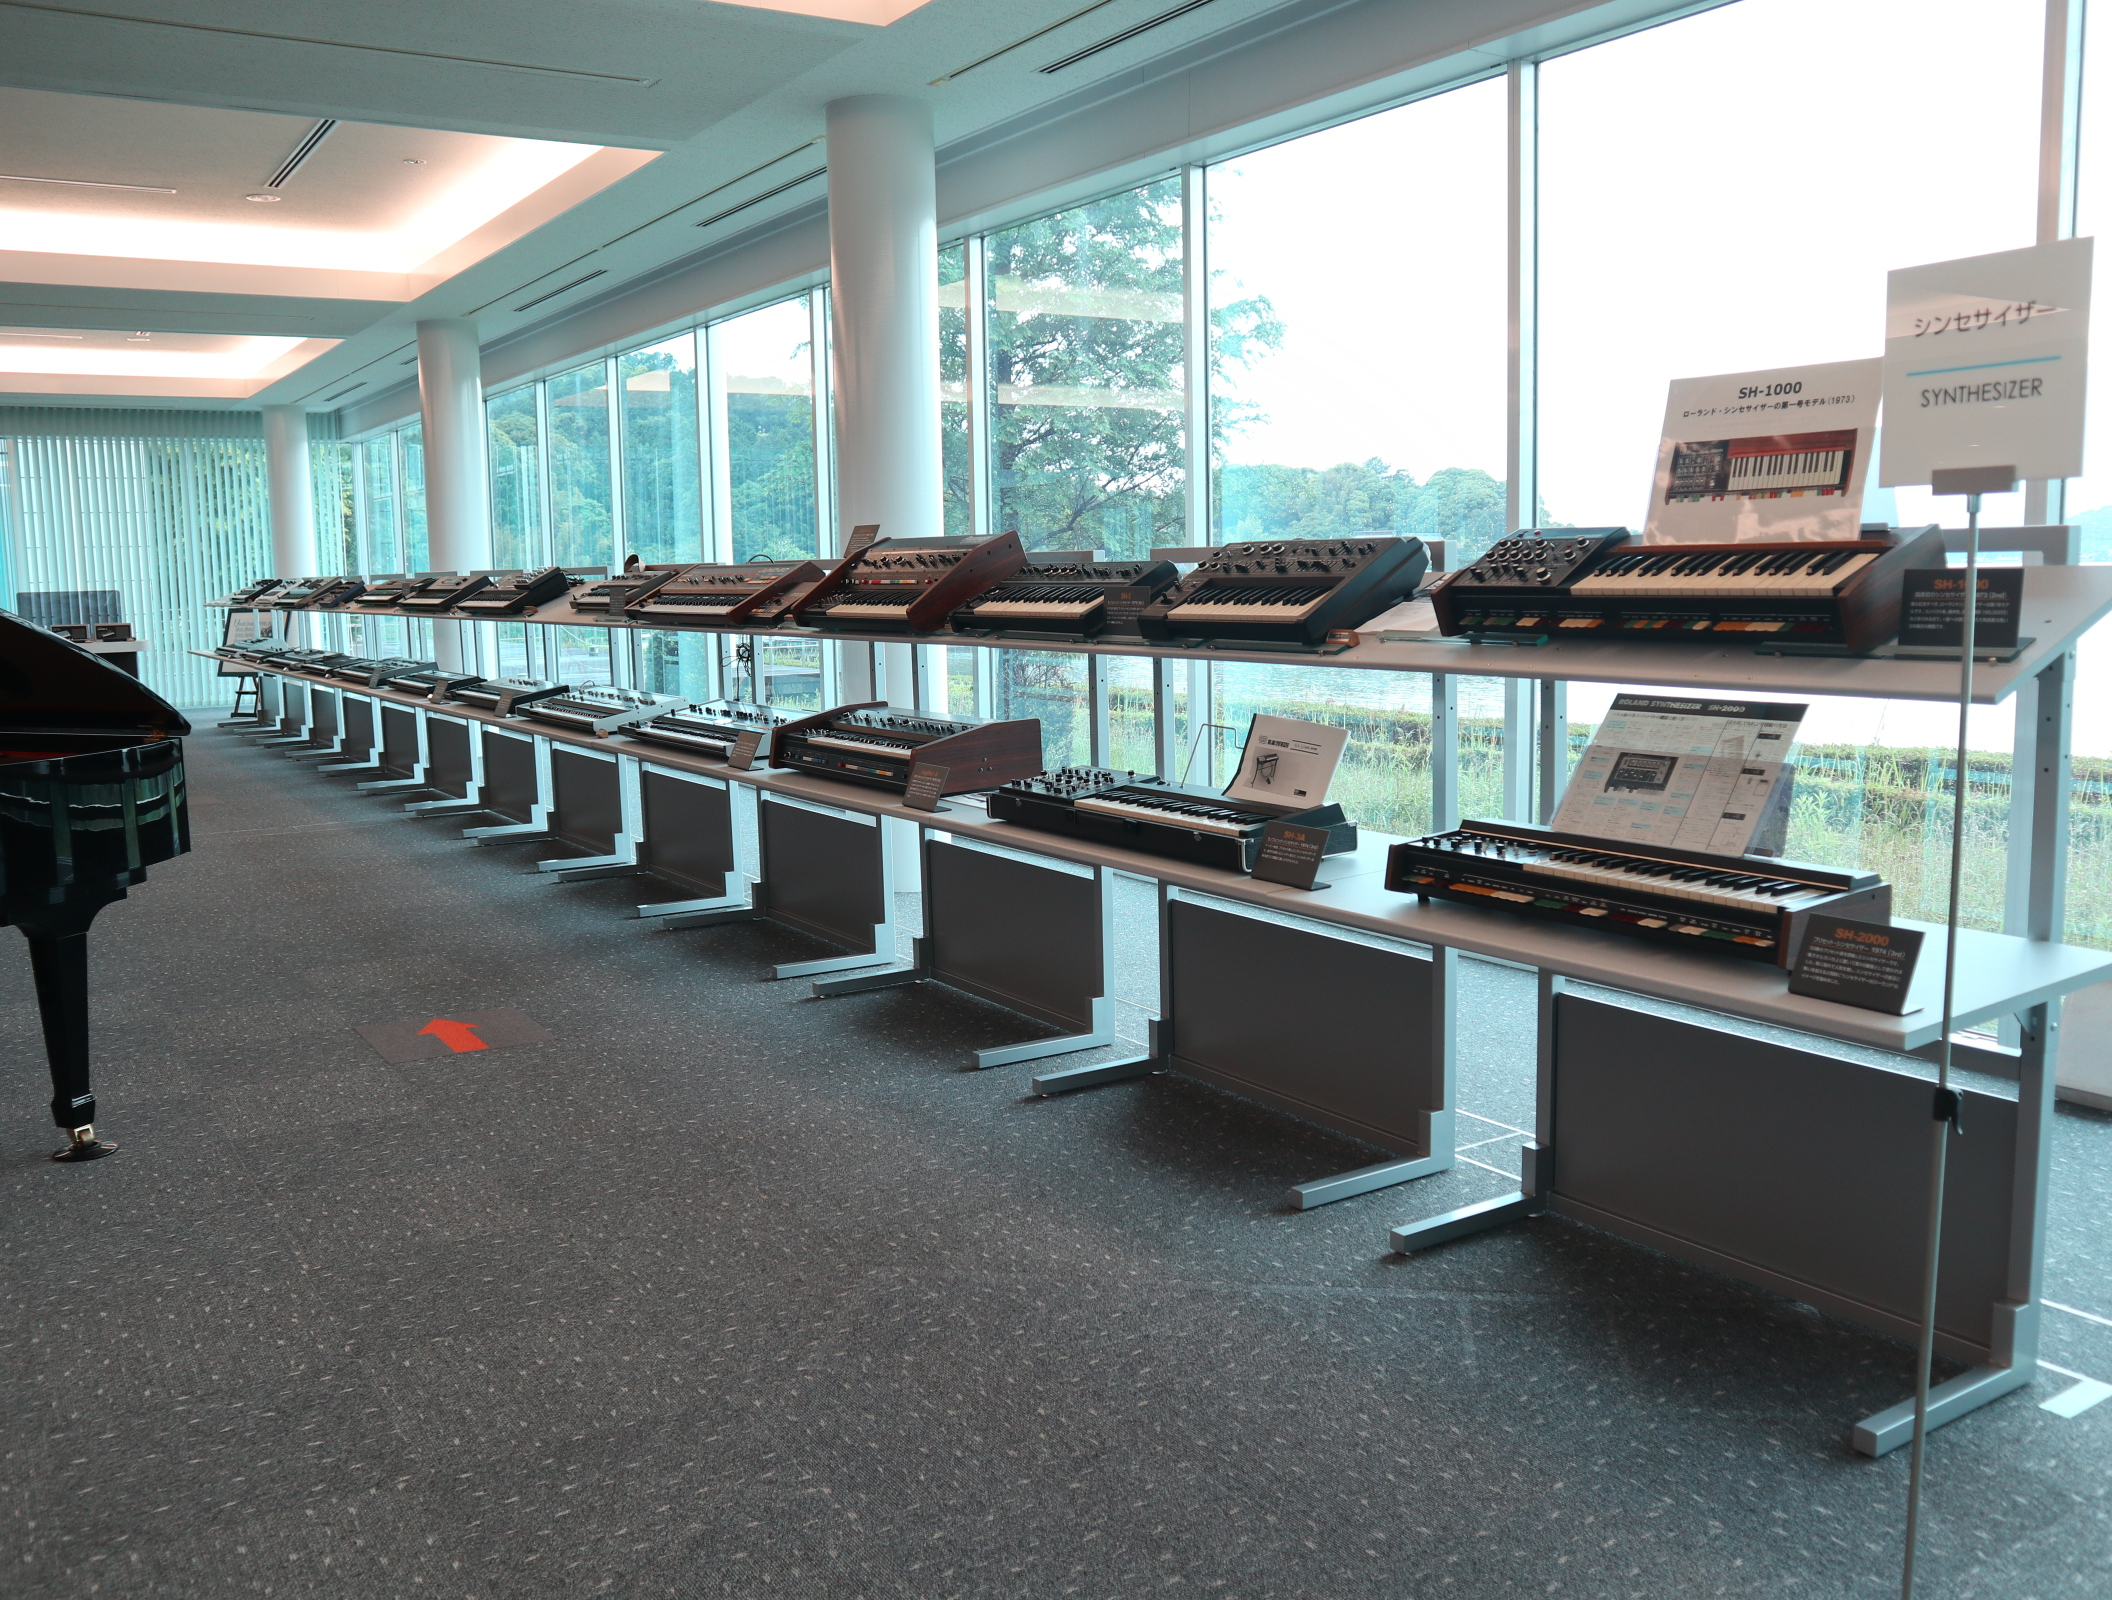 Synthesizer section of the museum